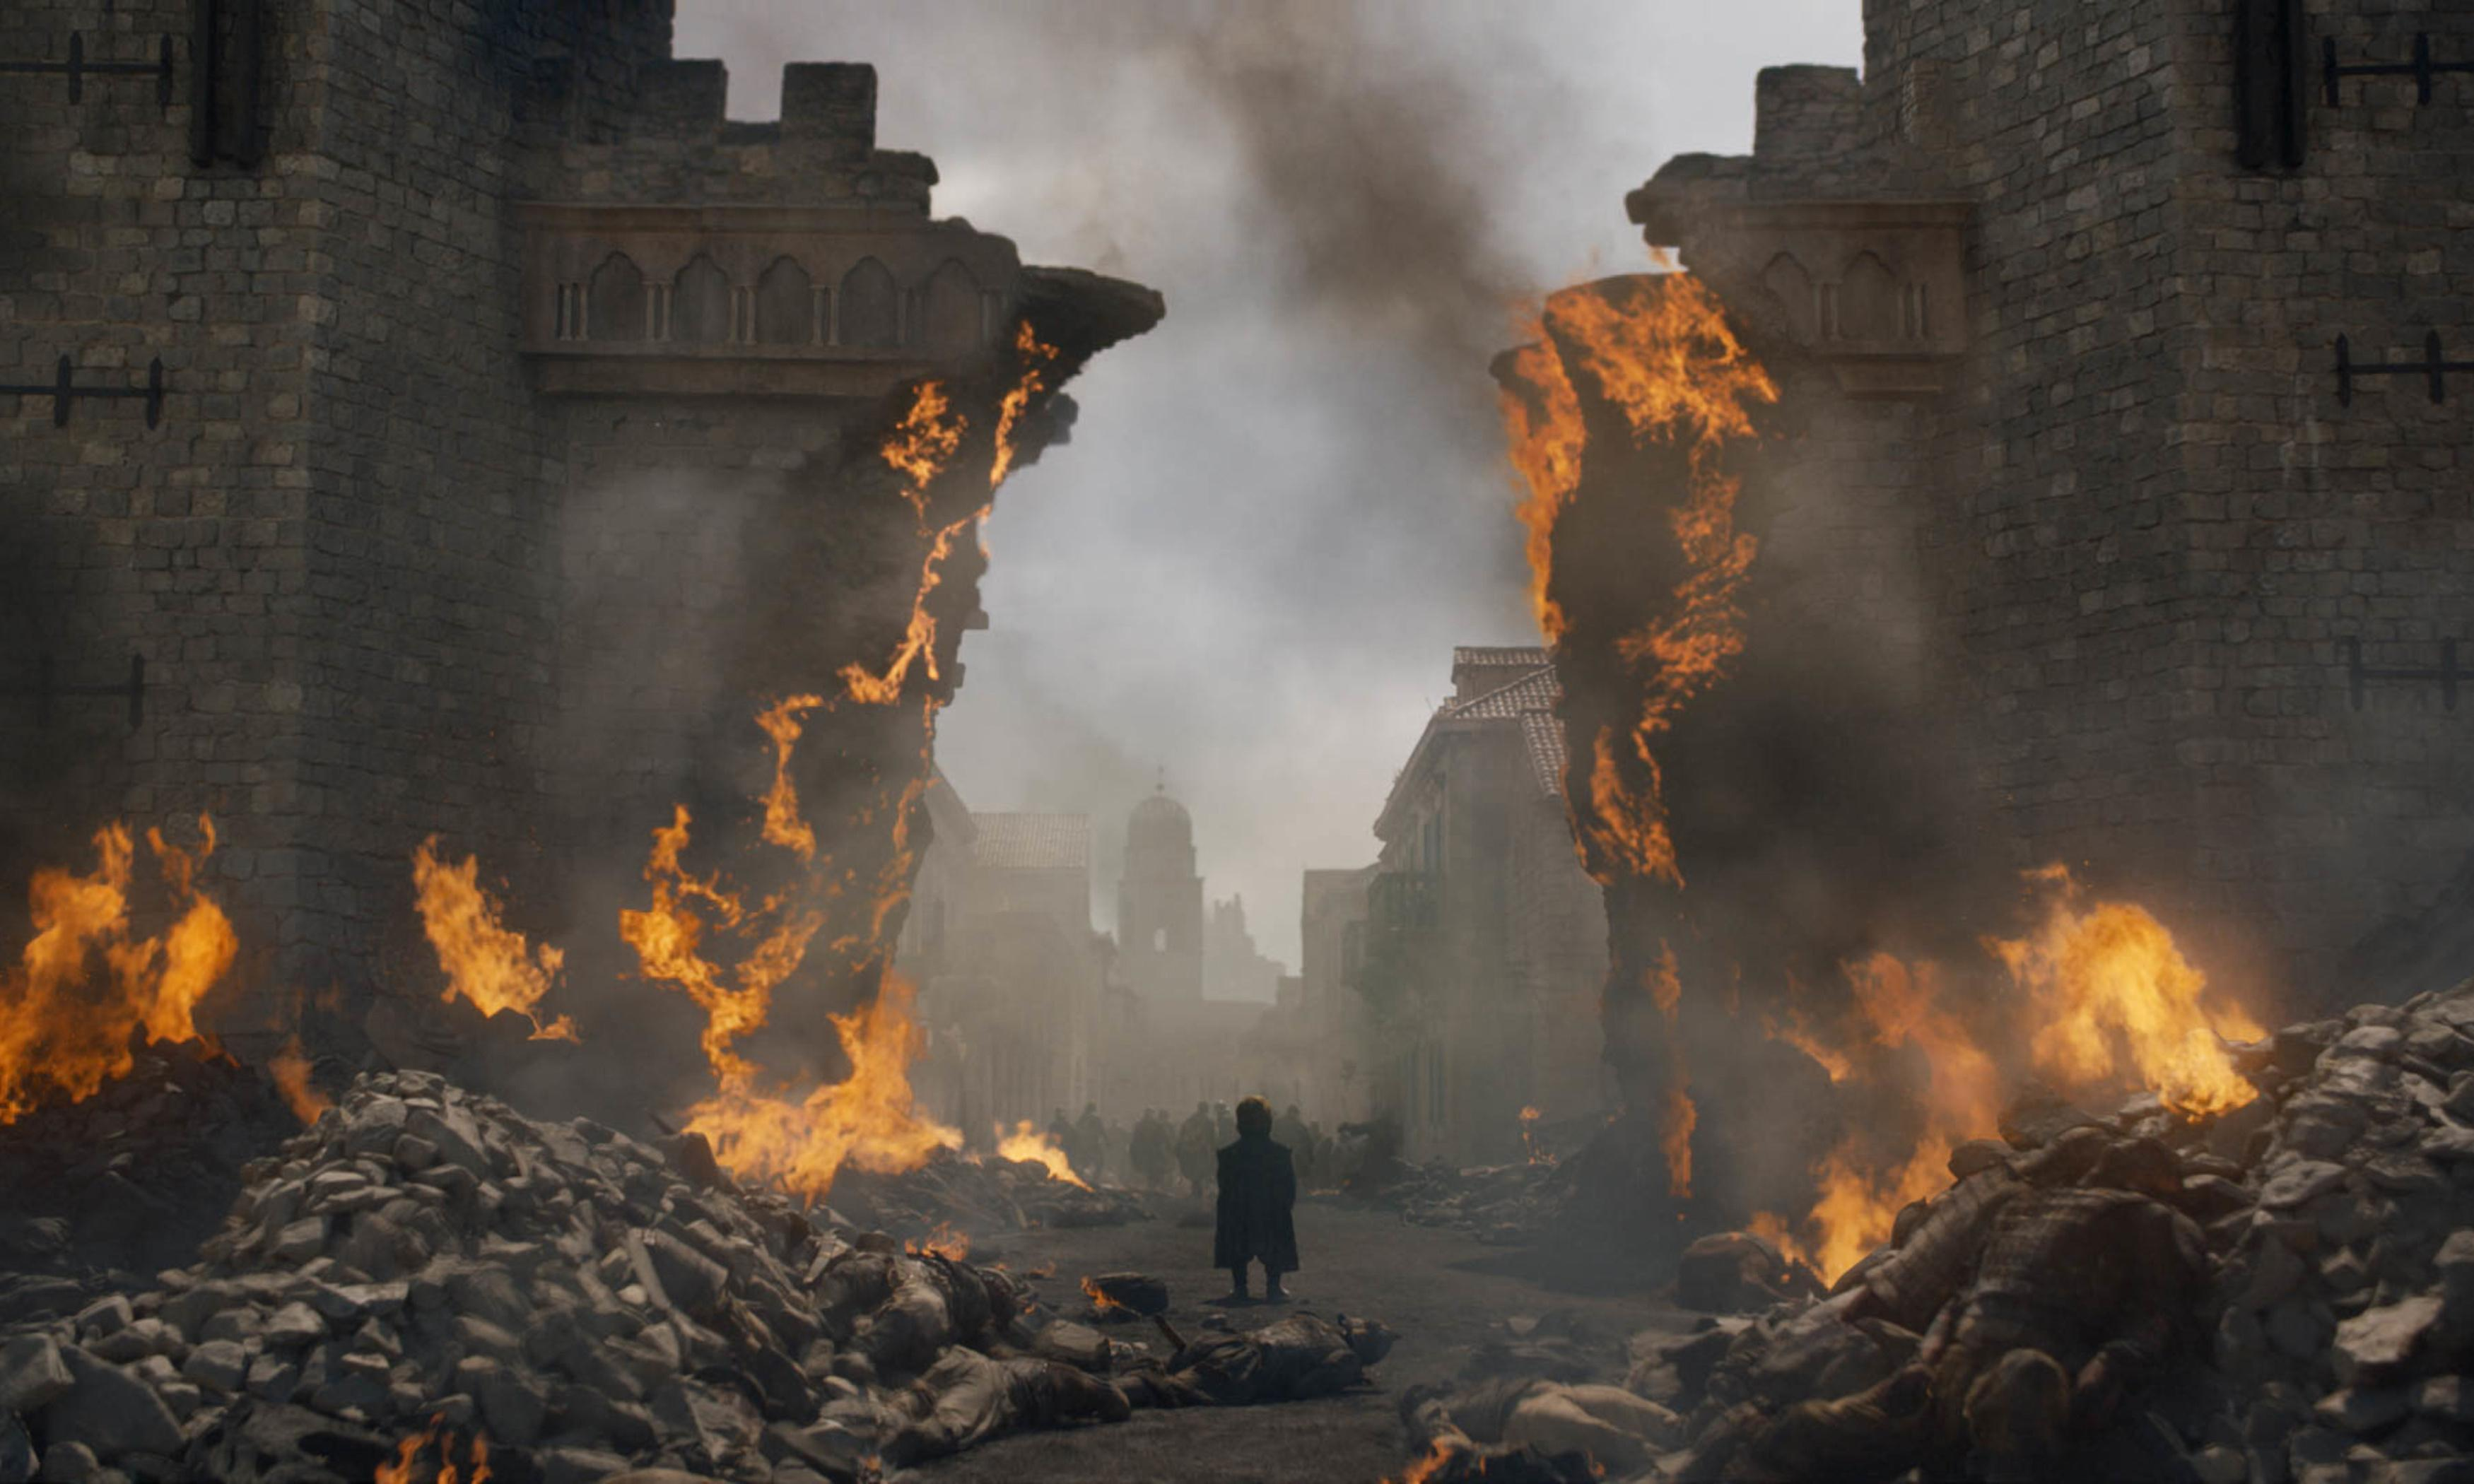 'Satisfying', or 'a travesty'? Fans torn over Game of Thrones finale